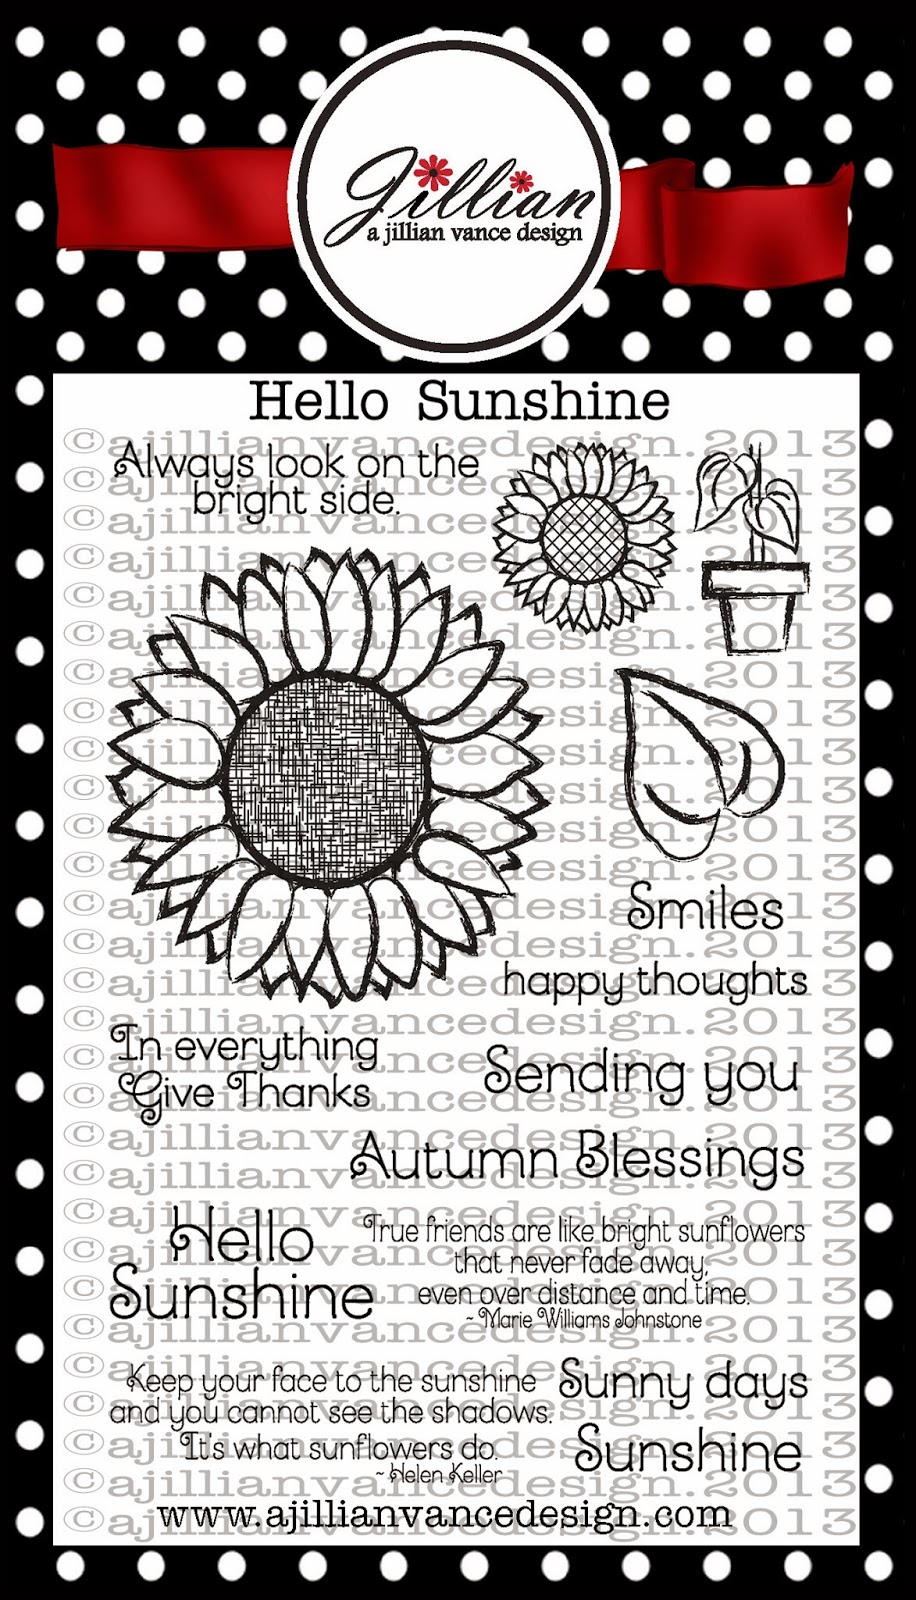 http://stores.ajillianvancedesign.com/-strse-385/Hello-Sunshine-Stamp-Set/Detail.bok